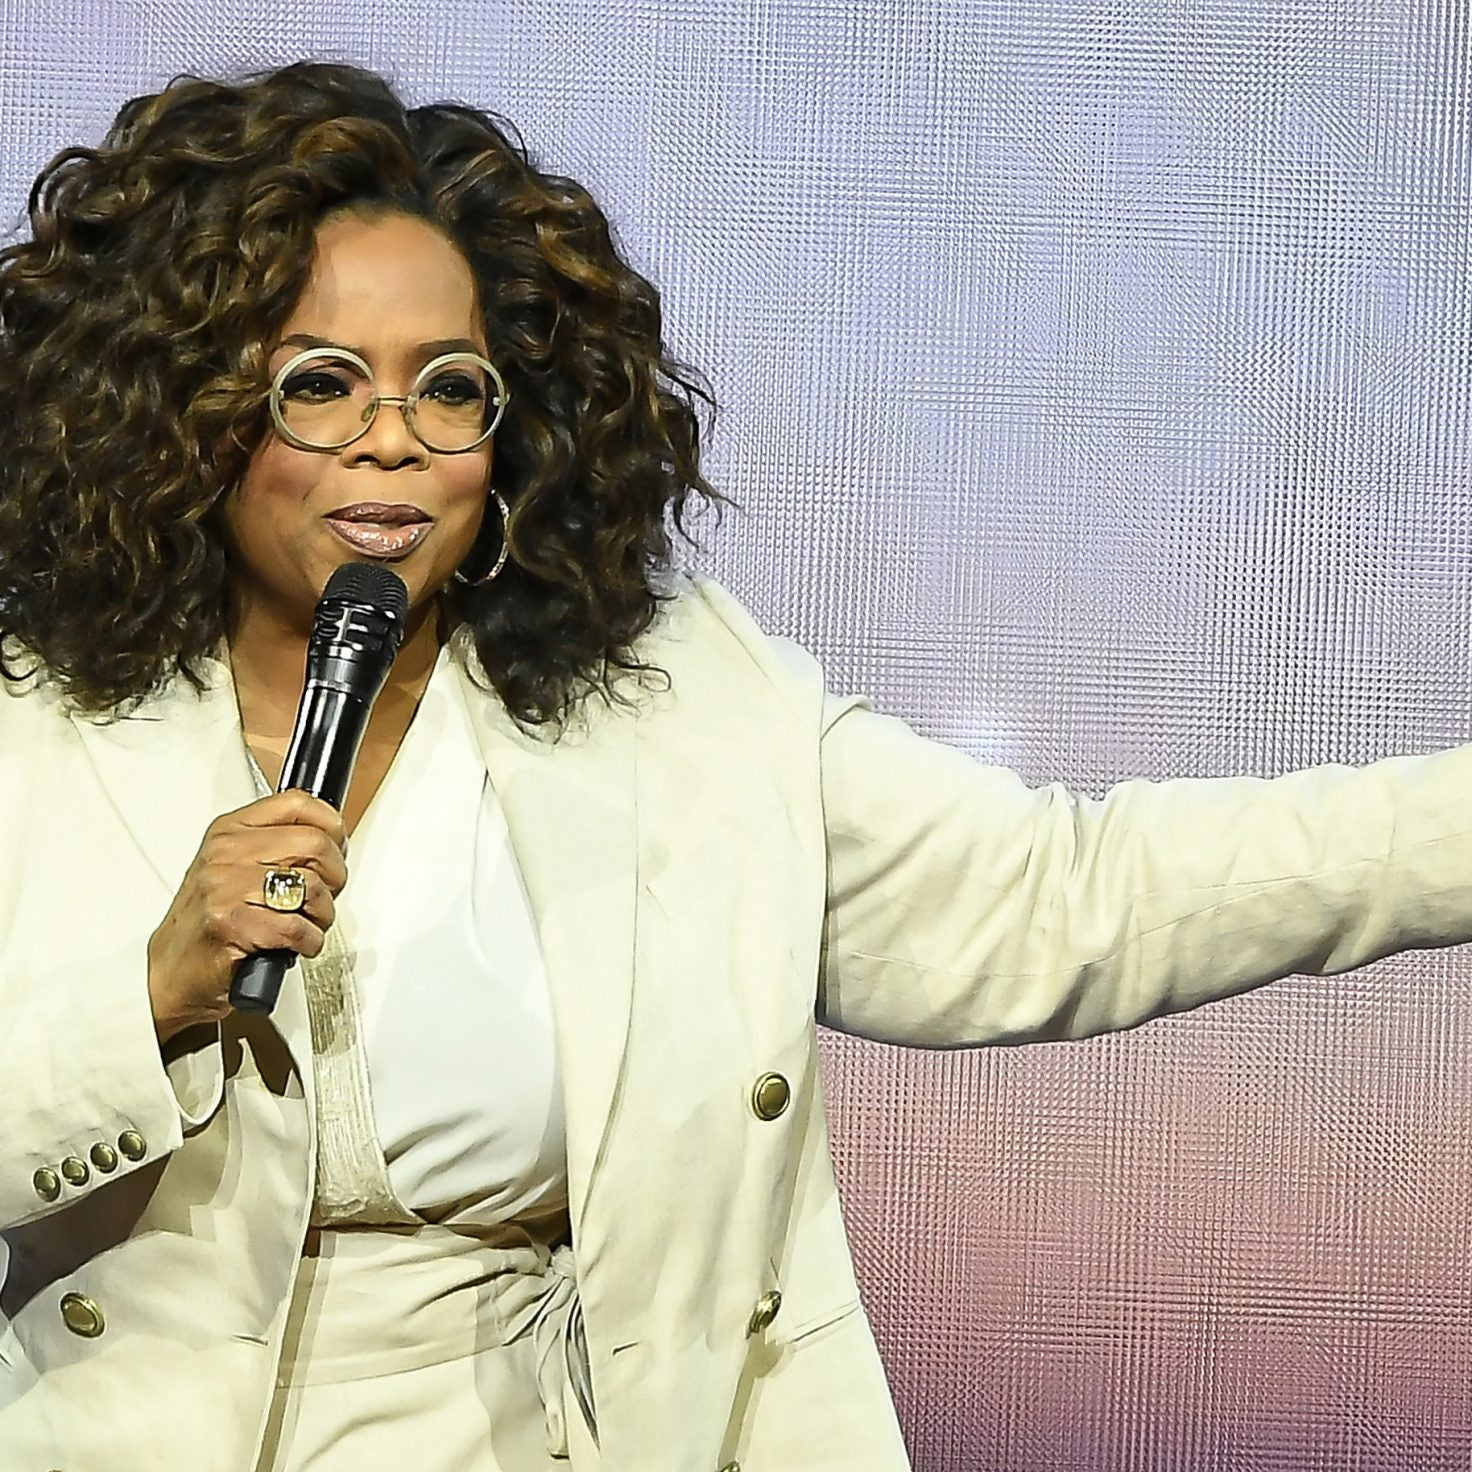 Oprah Winfrey Gets Emotional Talking About $12M Donation To Help Food-Insecure Families